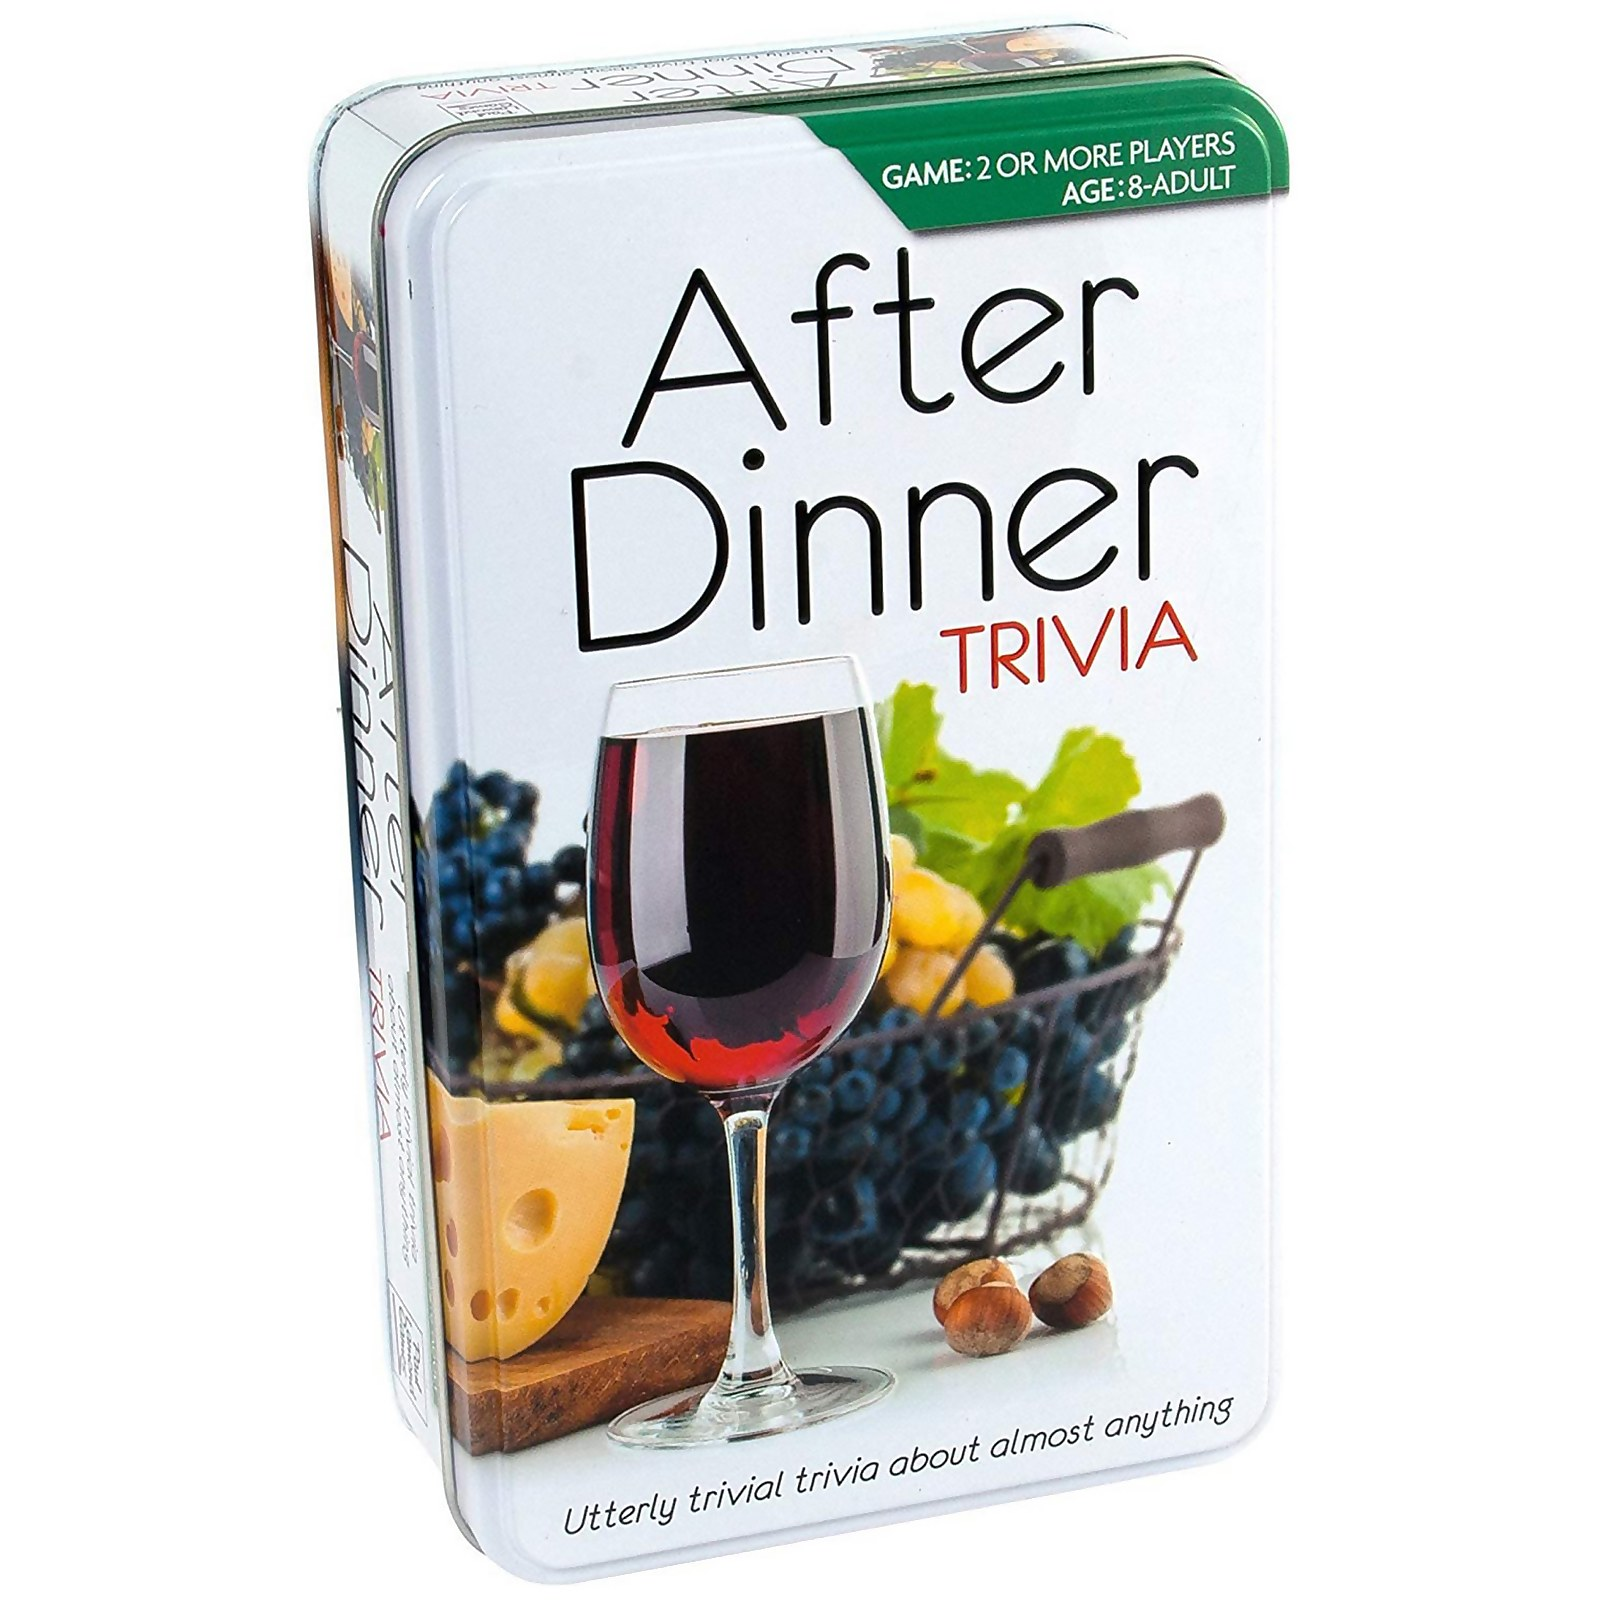 Image of After Dinner Trivia Card Game